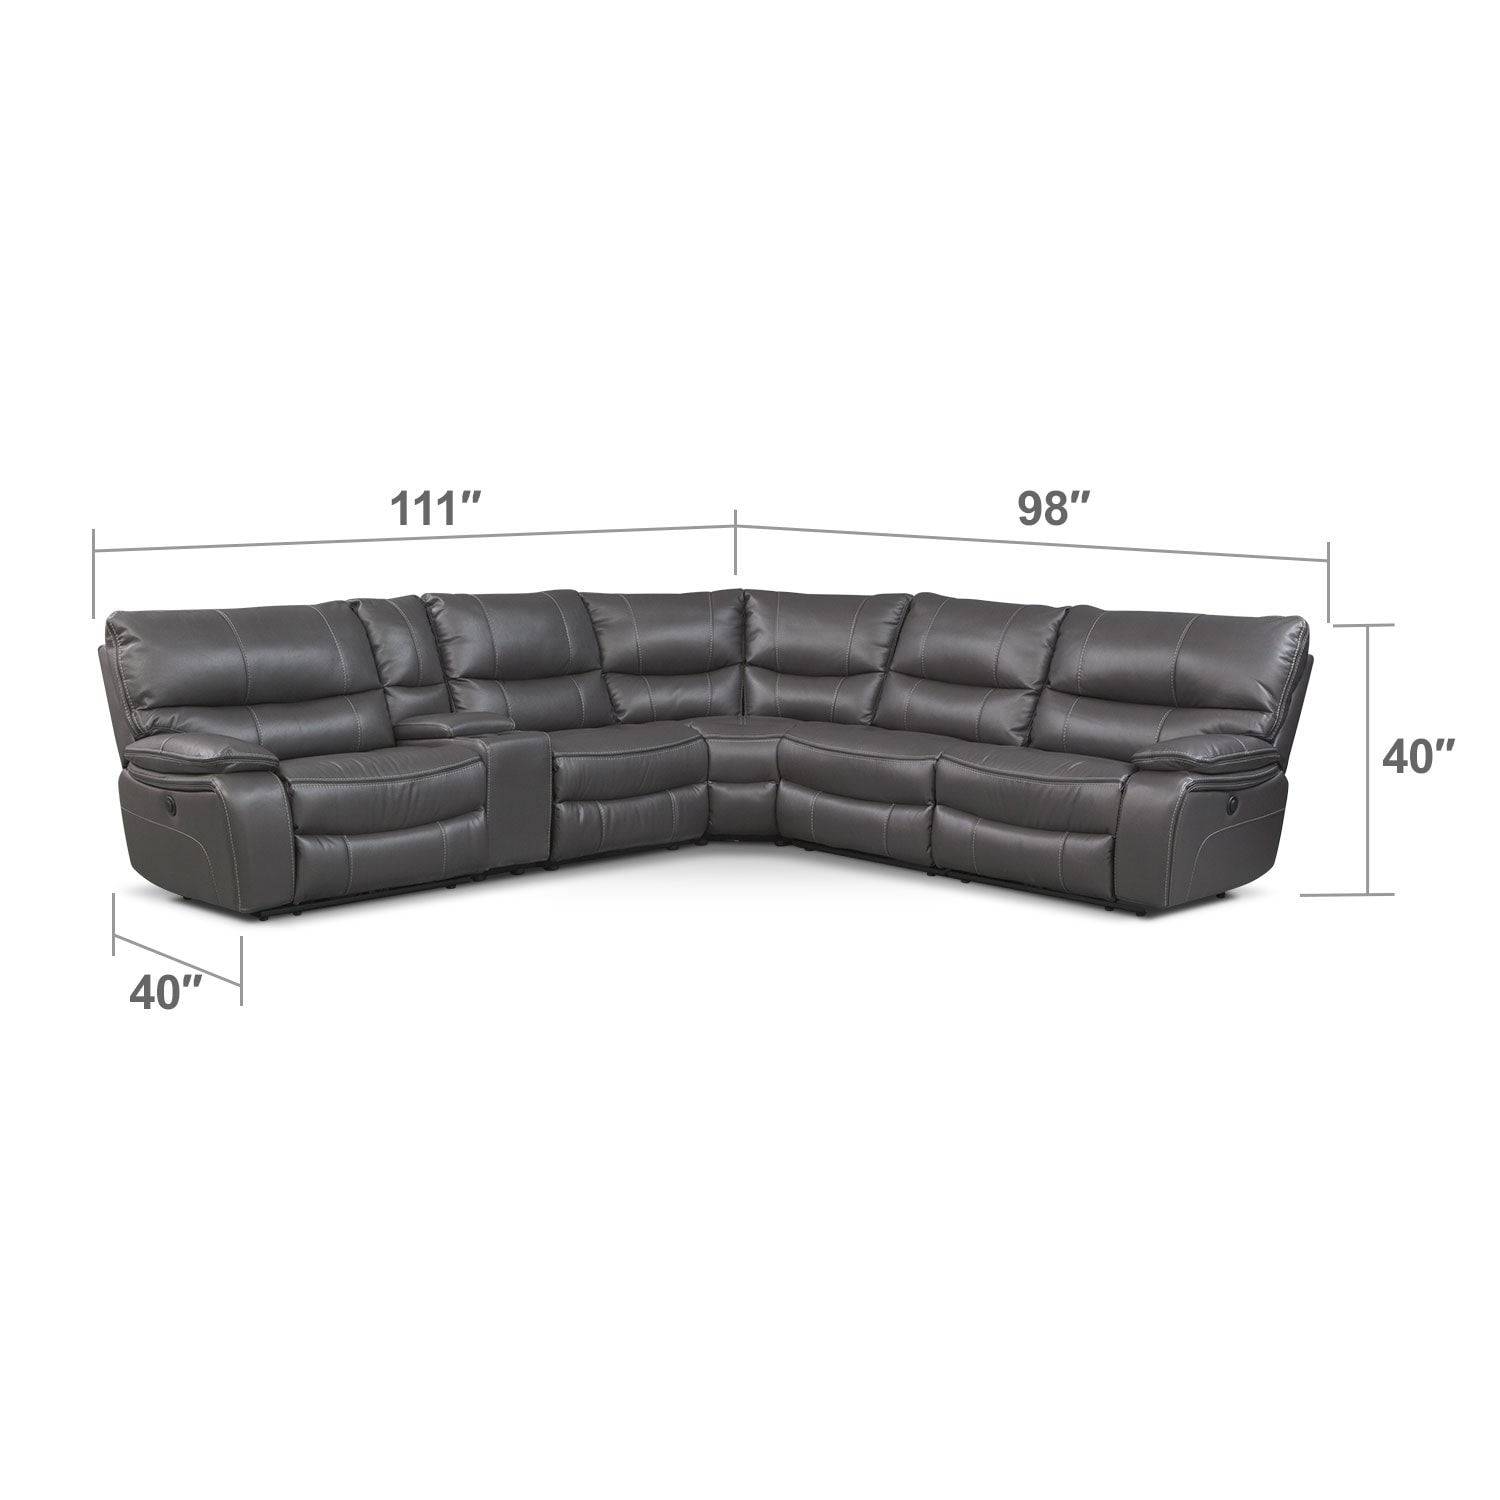 Living Room Furniture - Orlando 6-Piece Power Reclining Sectional w/ 1 Stationary Chair - Gray